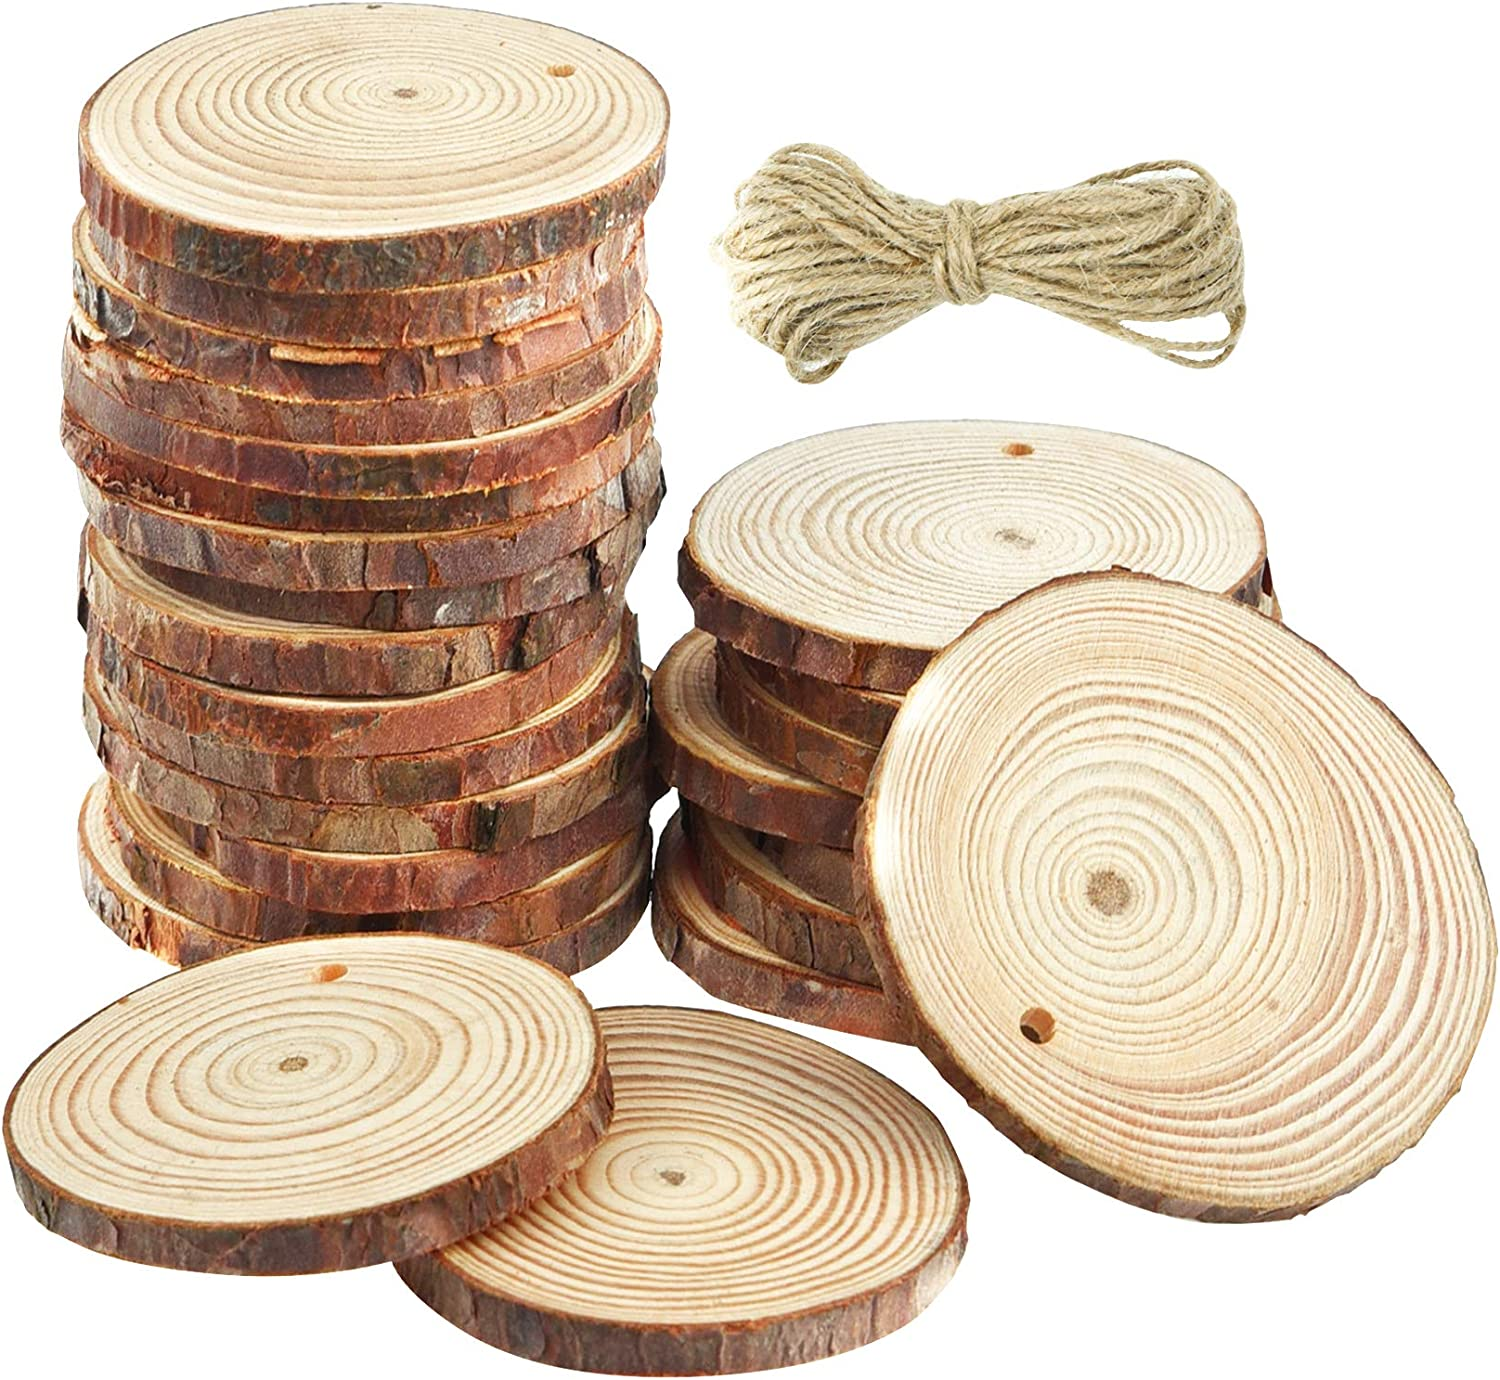 """Natural Wood Slices Unfinished Predrilled Round Discs Hole Wooden Circles with Natural Jute Twine 2.4""""-2.8"""" for Arts,Crafts,Christmas,Rustic Wedding Ornaments,DIY Crafts and Gift Tags (25)"""